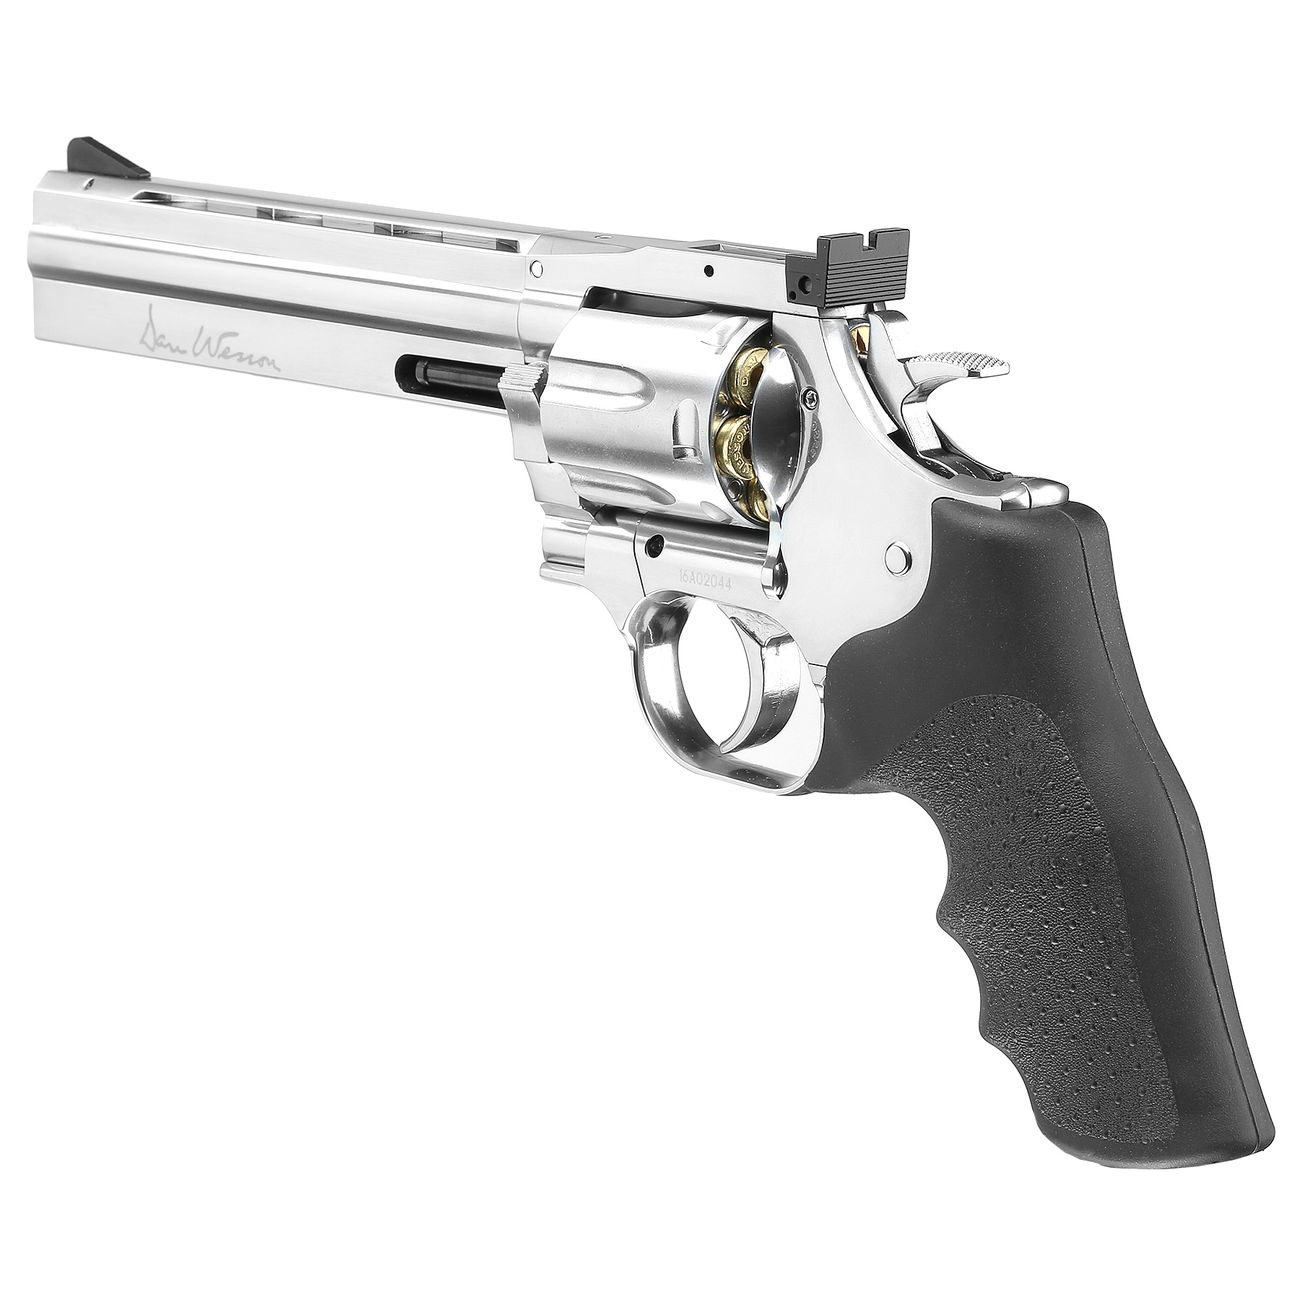 ASG Dan Wesson 715 6 Zoll Revolver Vollmetall CO2 6mm BB chrom Low Power Version 3